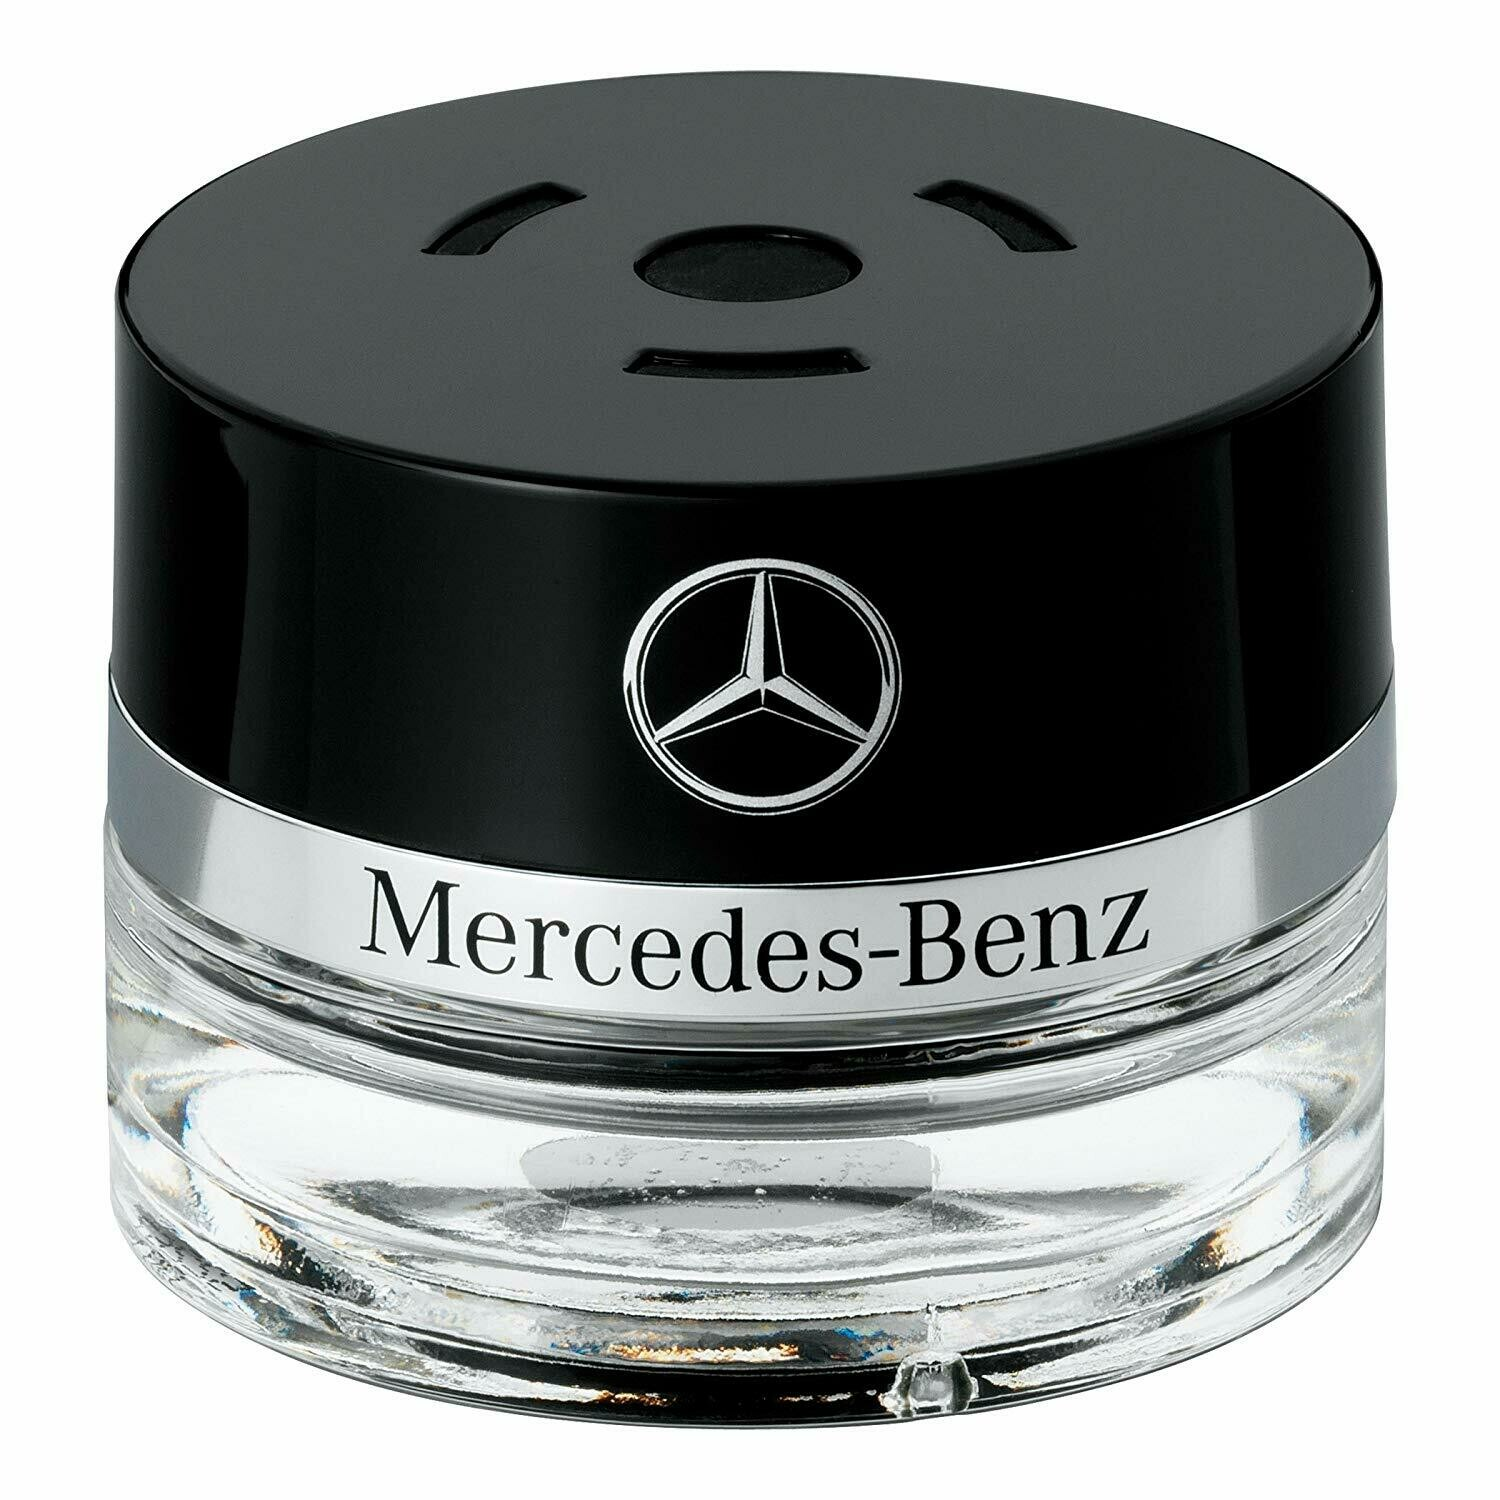 Mercedes-Benz Air Spencer Downtown Mood